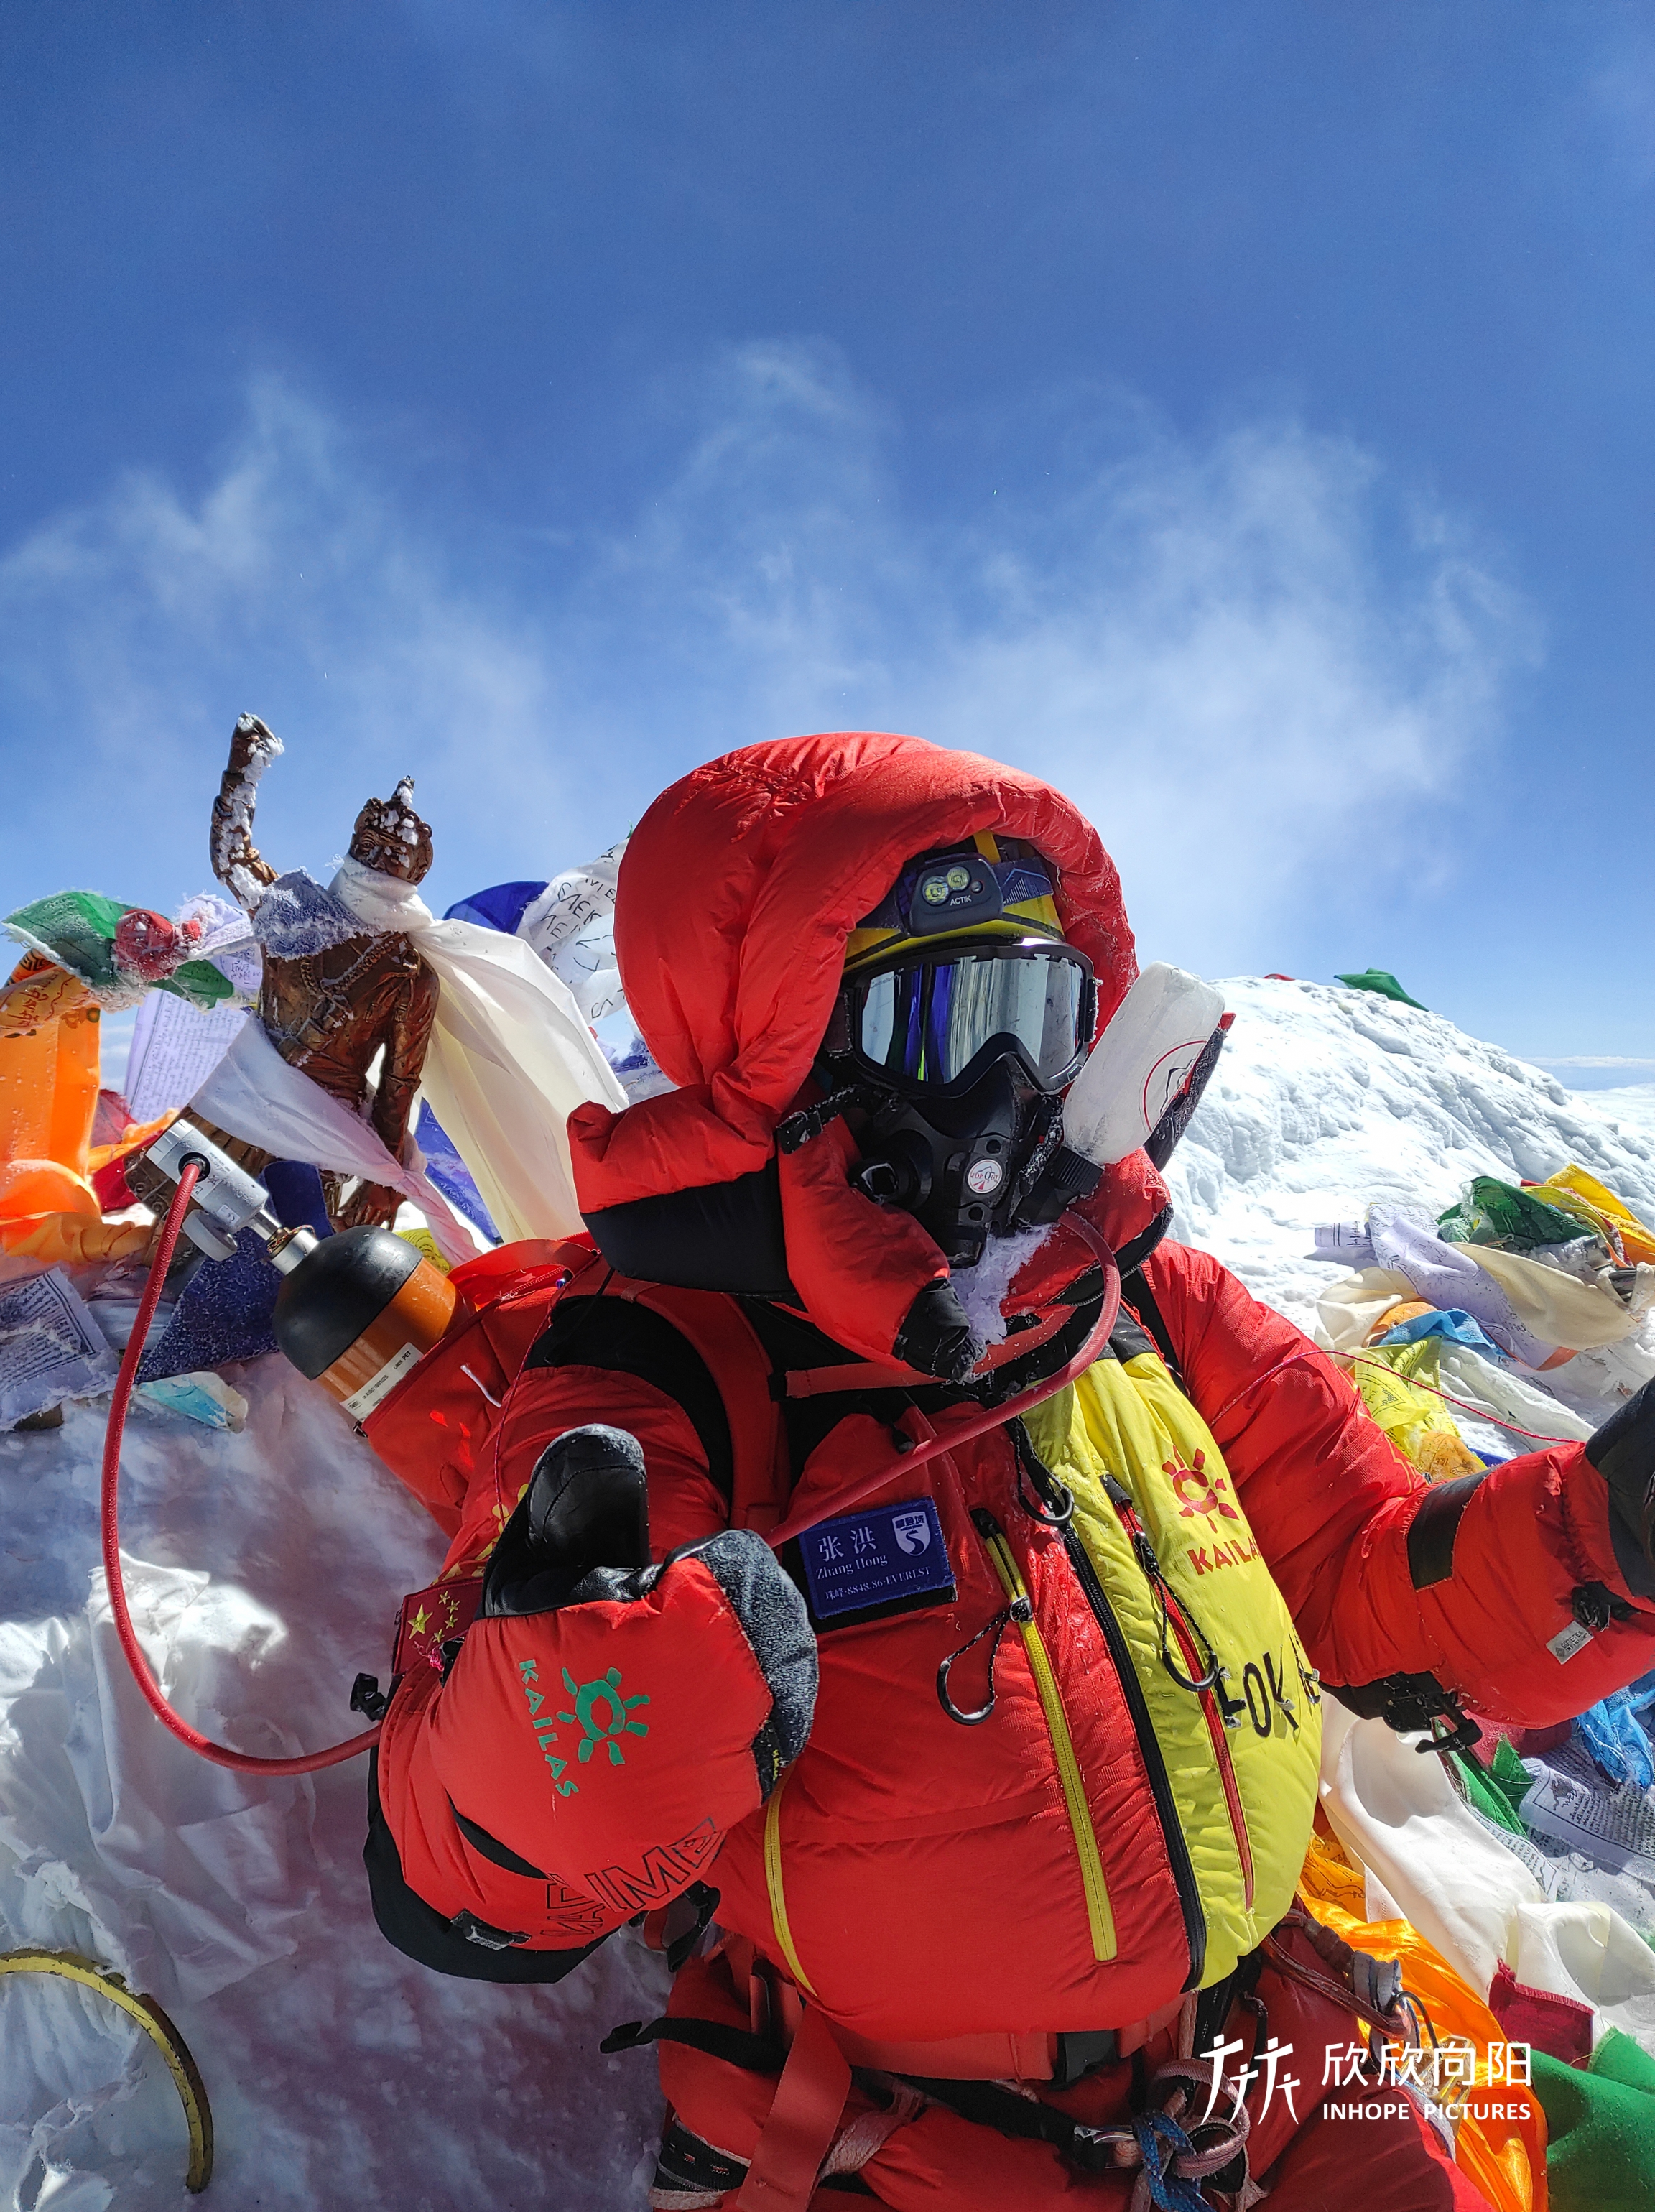 Man in a red coat amid a snowy Mount Everest